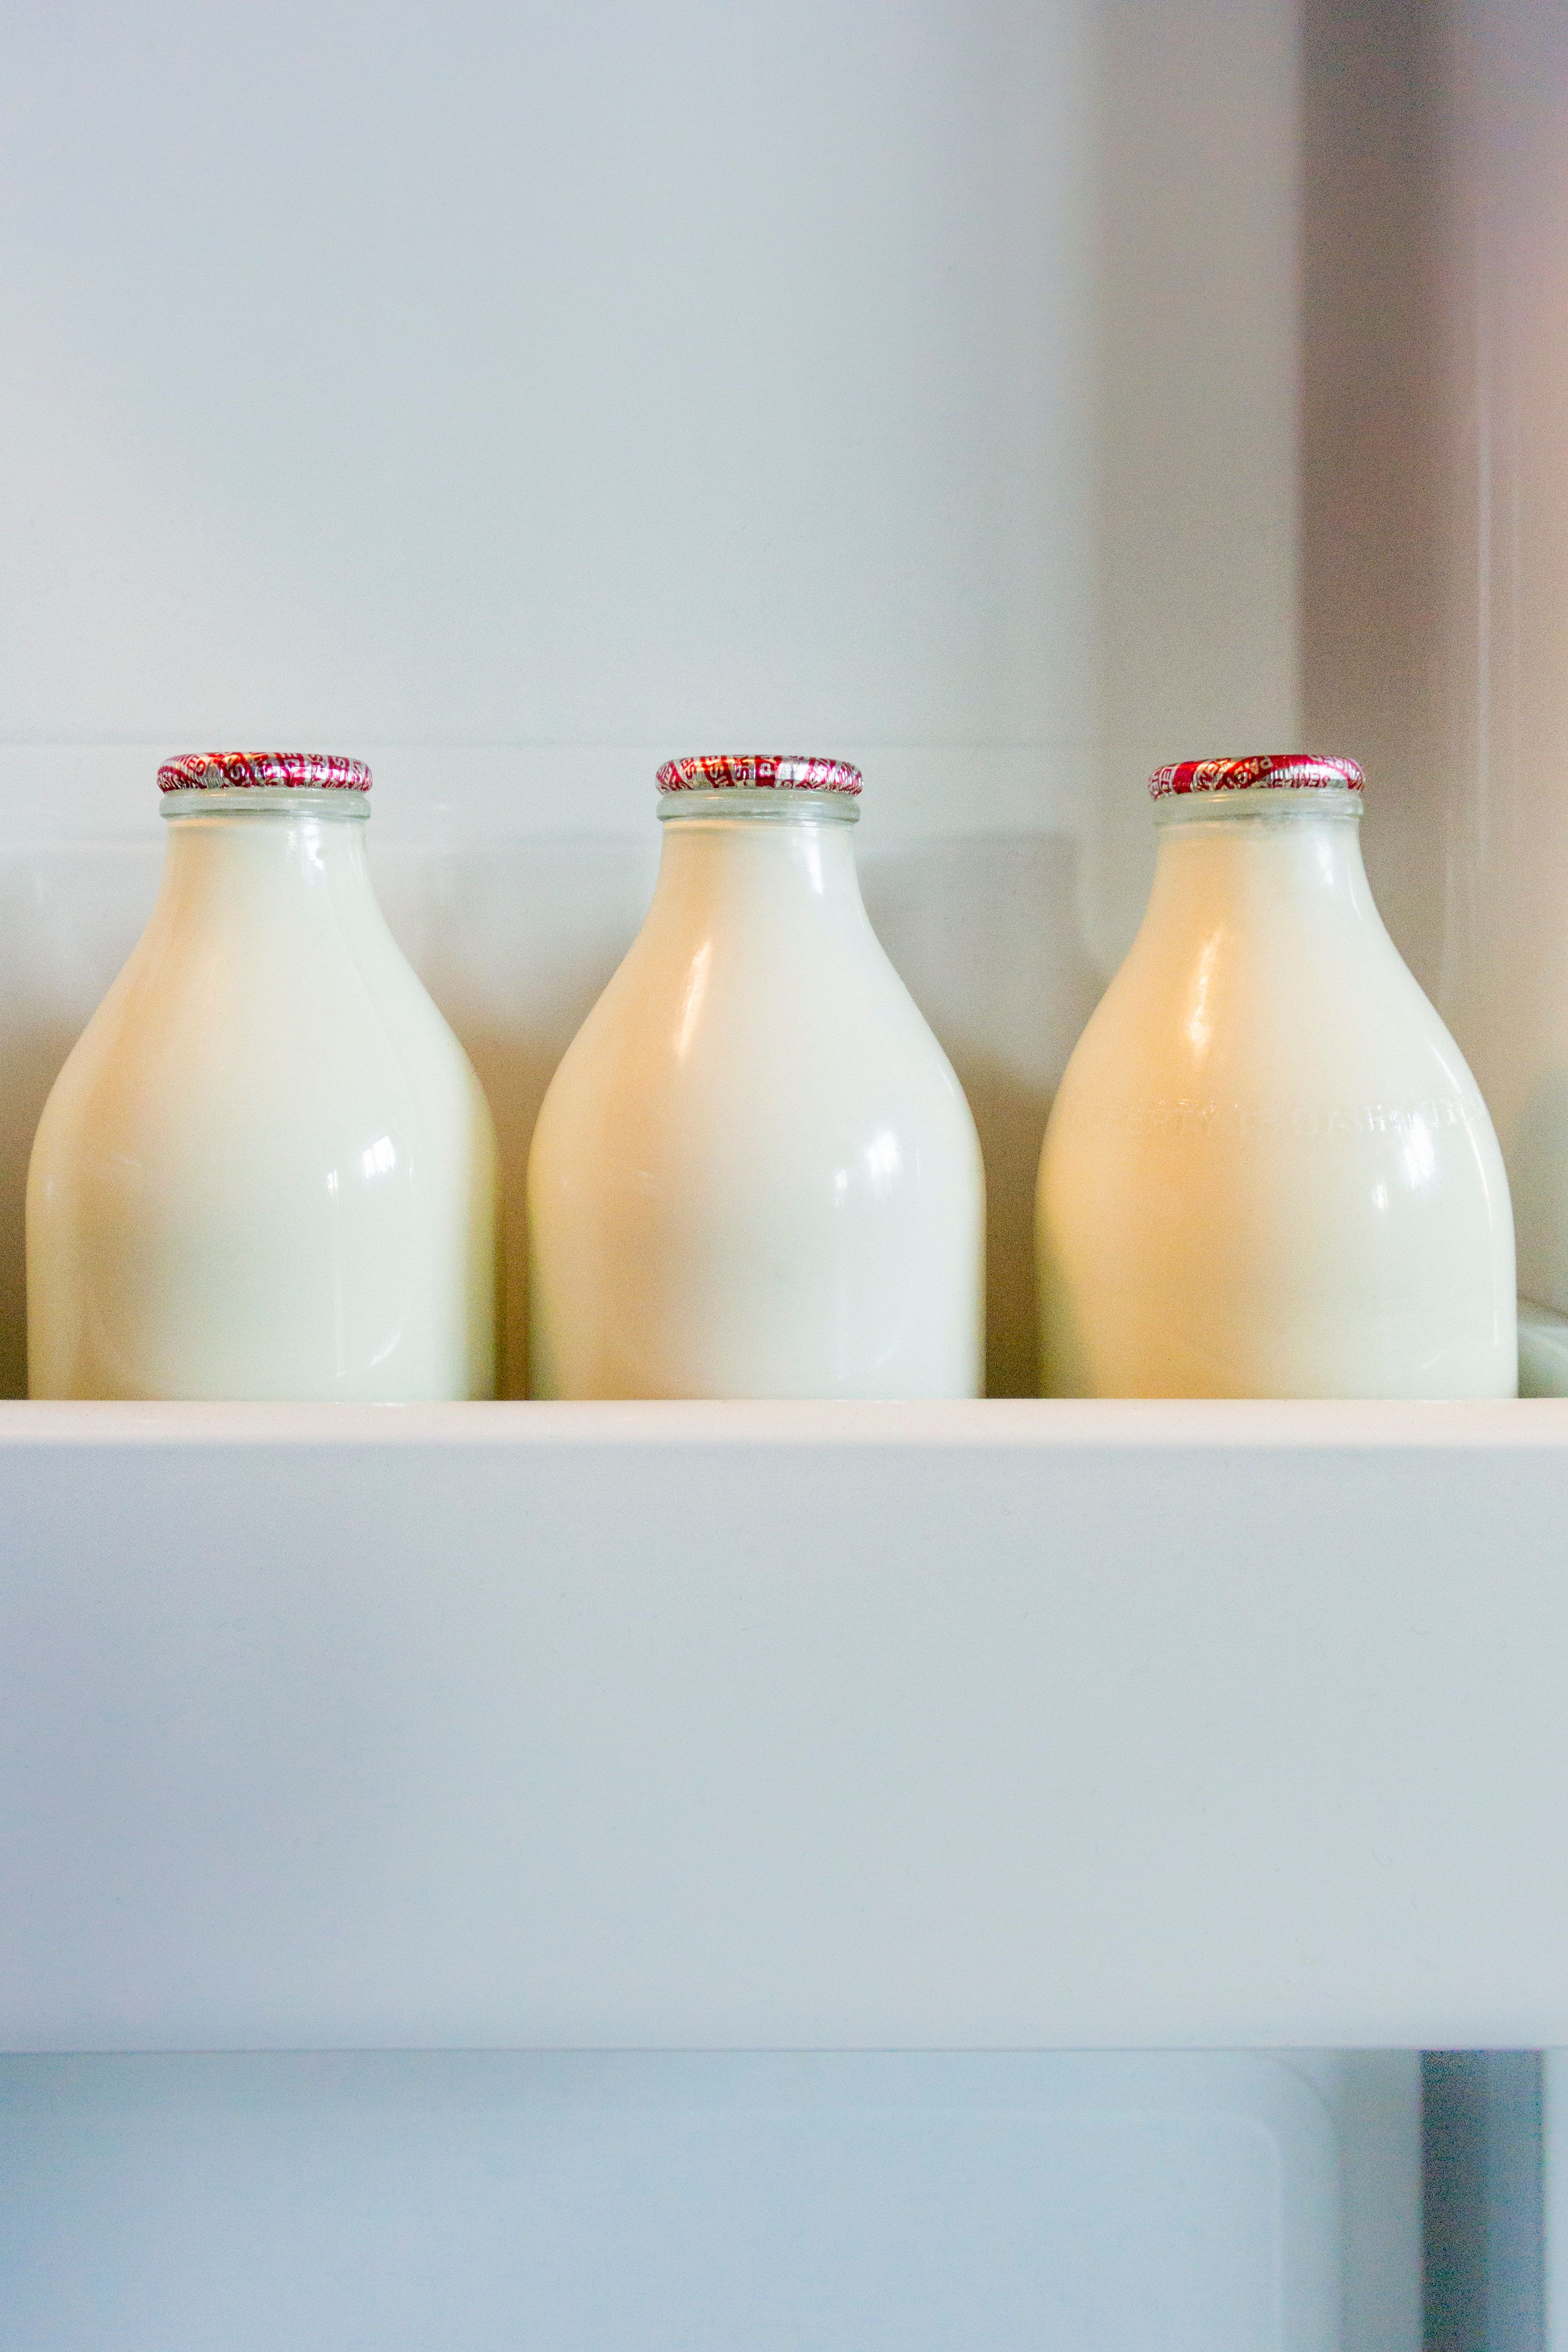 Colour-Changing Milk Labels Could Soon Tell You When Your Fridge Is Too